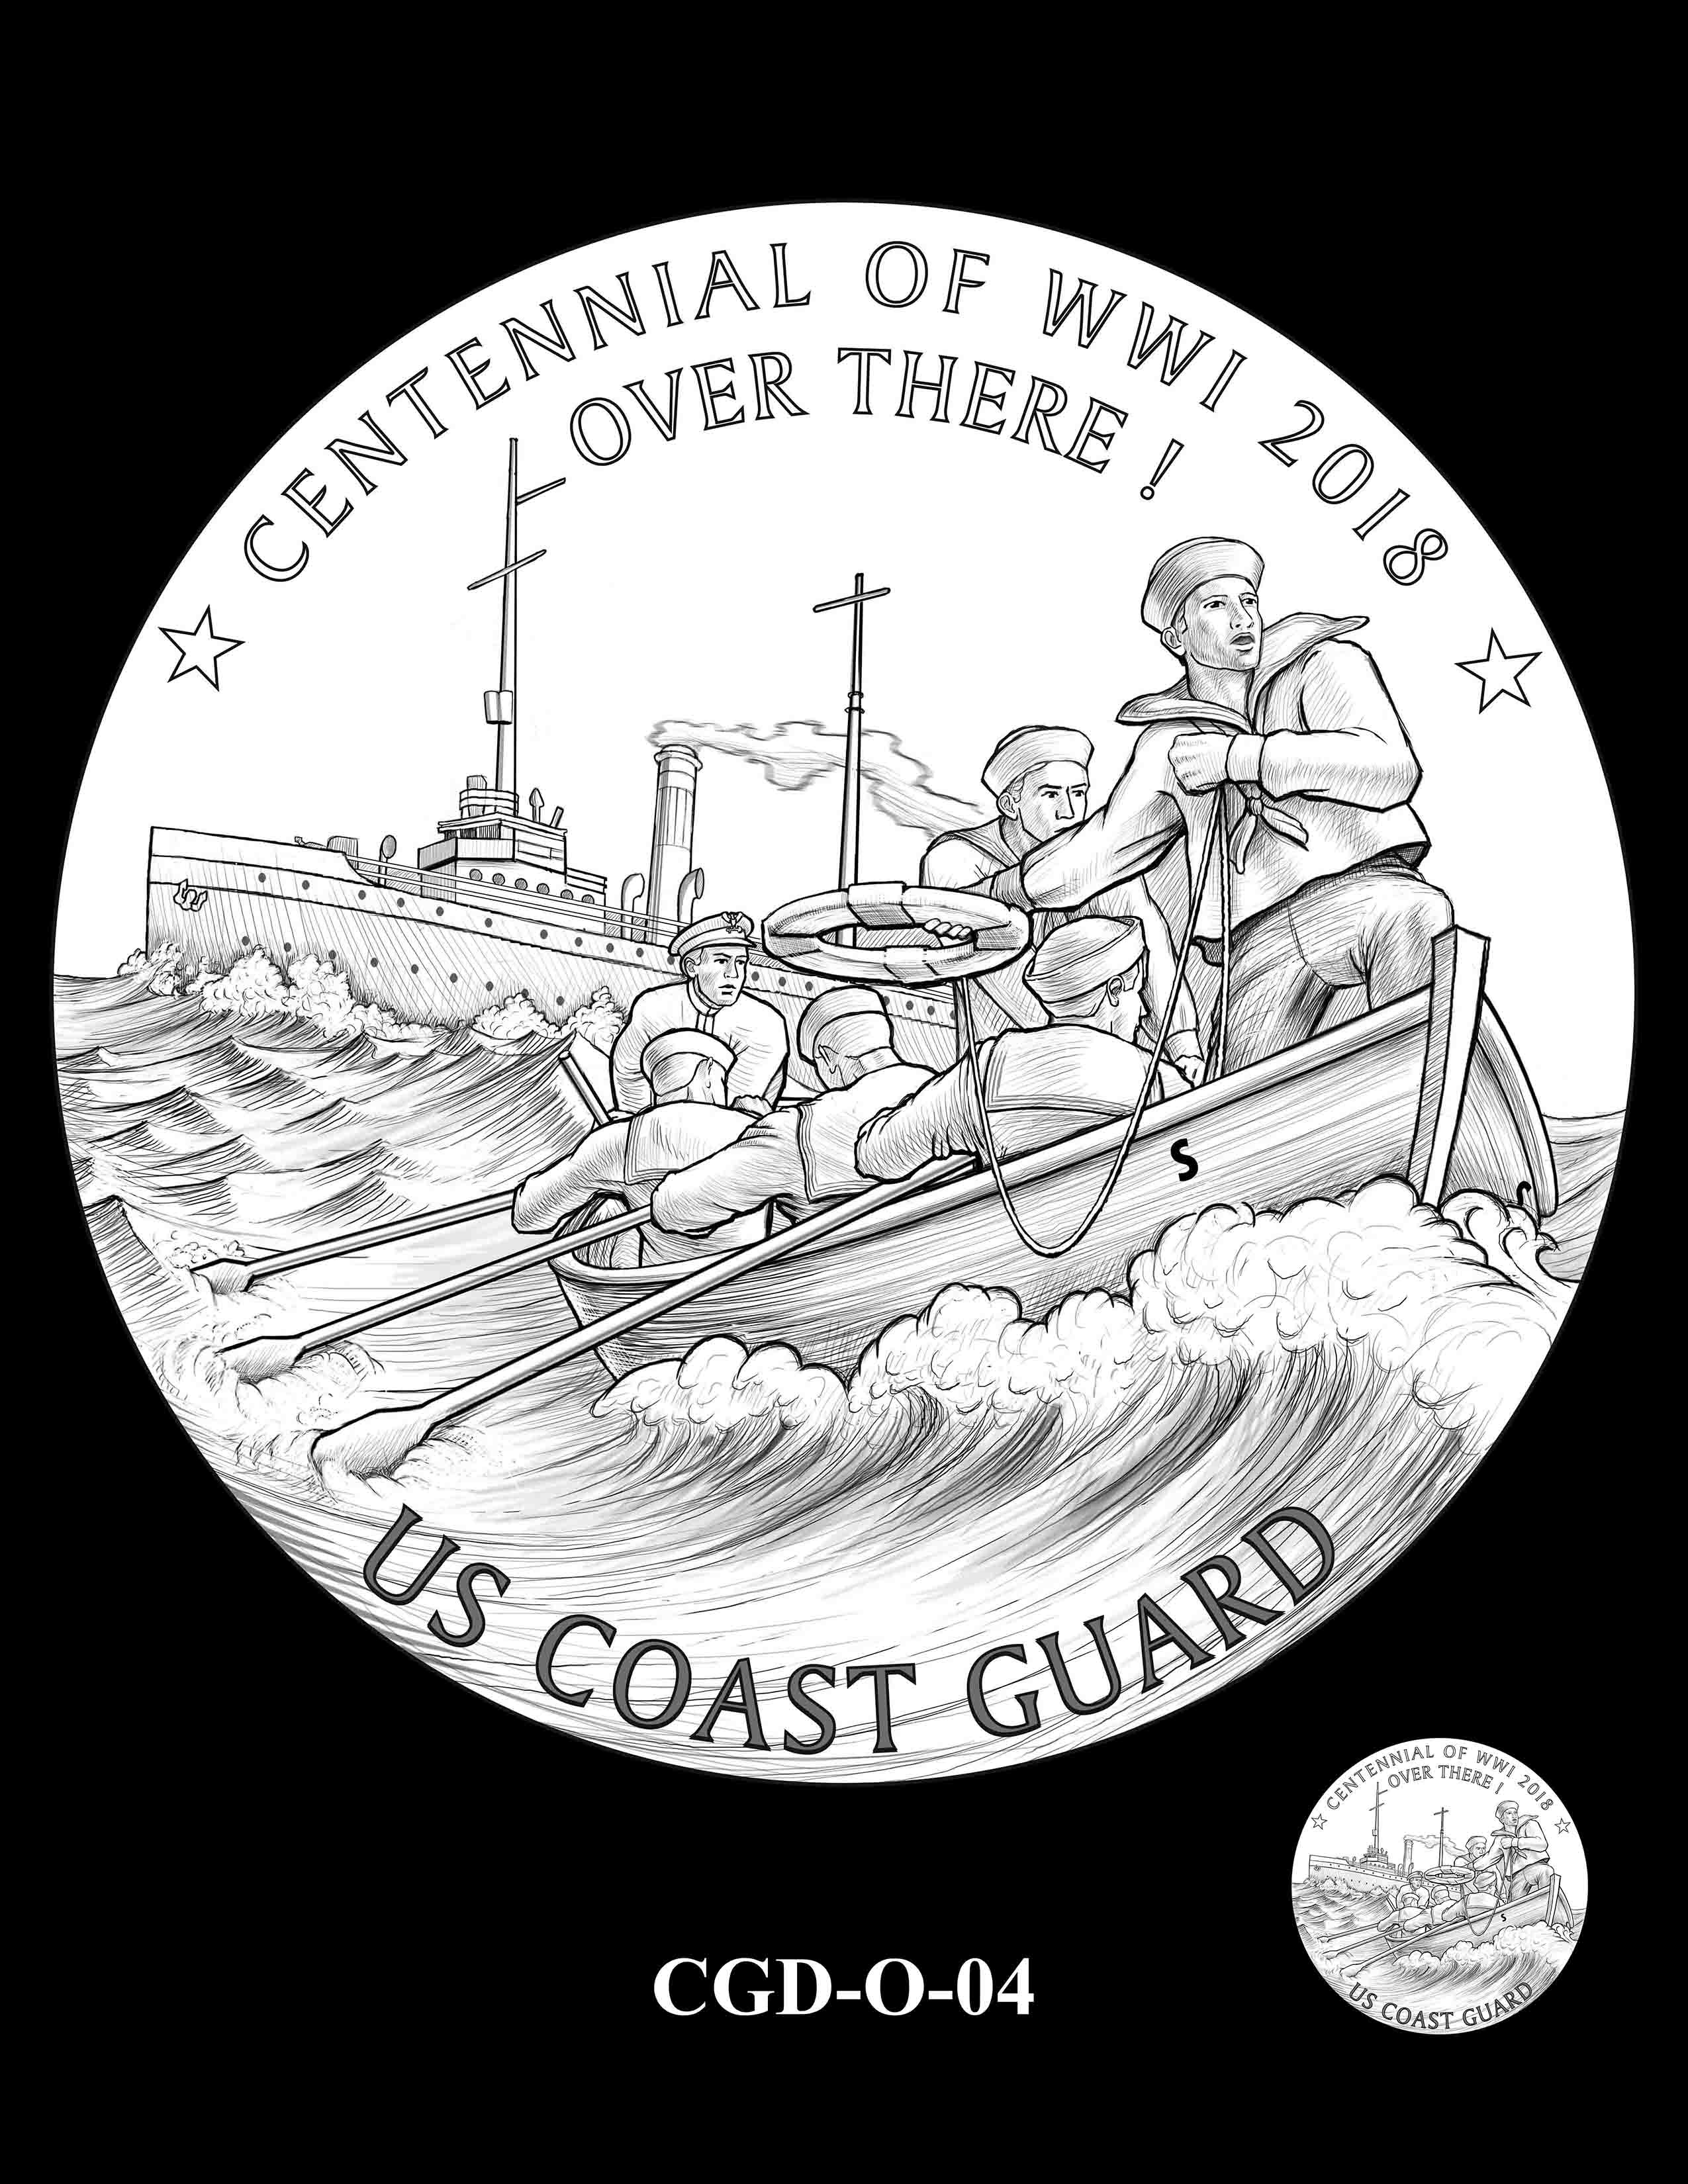 P1a-CGD-O-04 -- 2018-World War I Silver Medals - Coast Guard